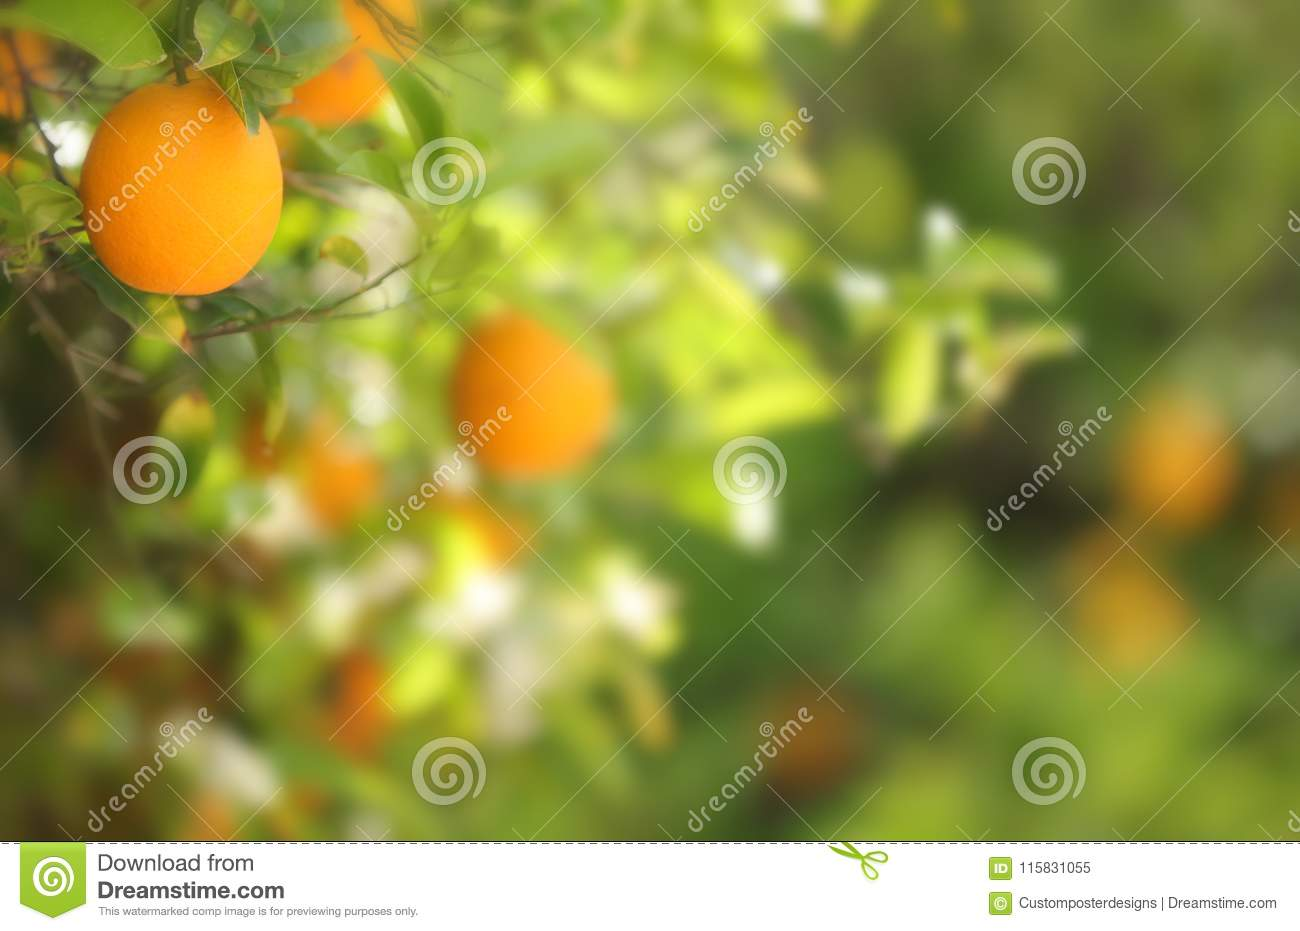 An orange with a blurred background.